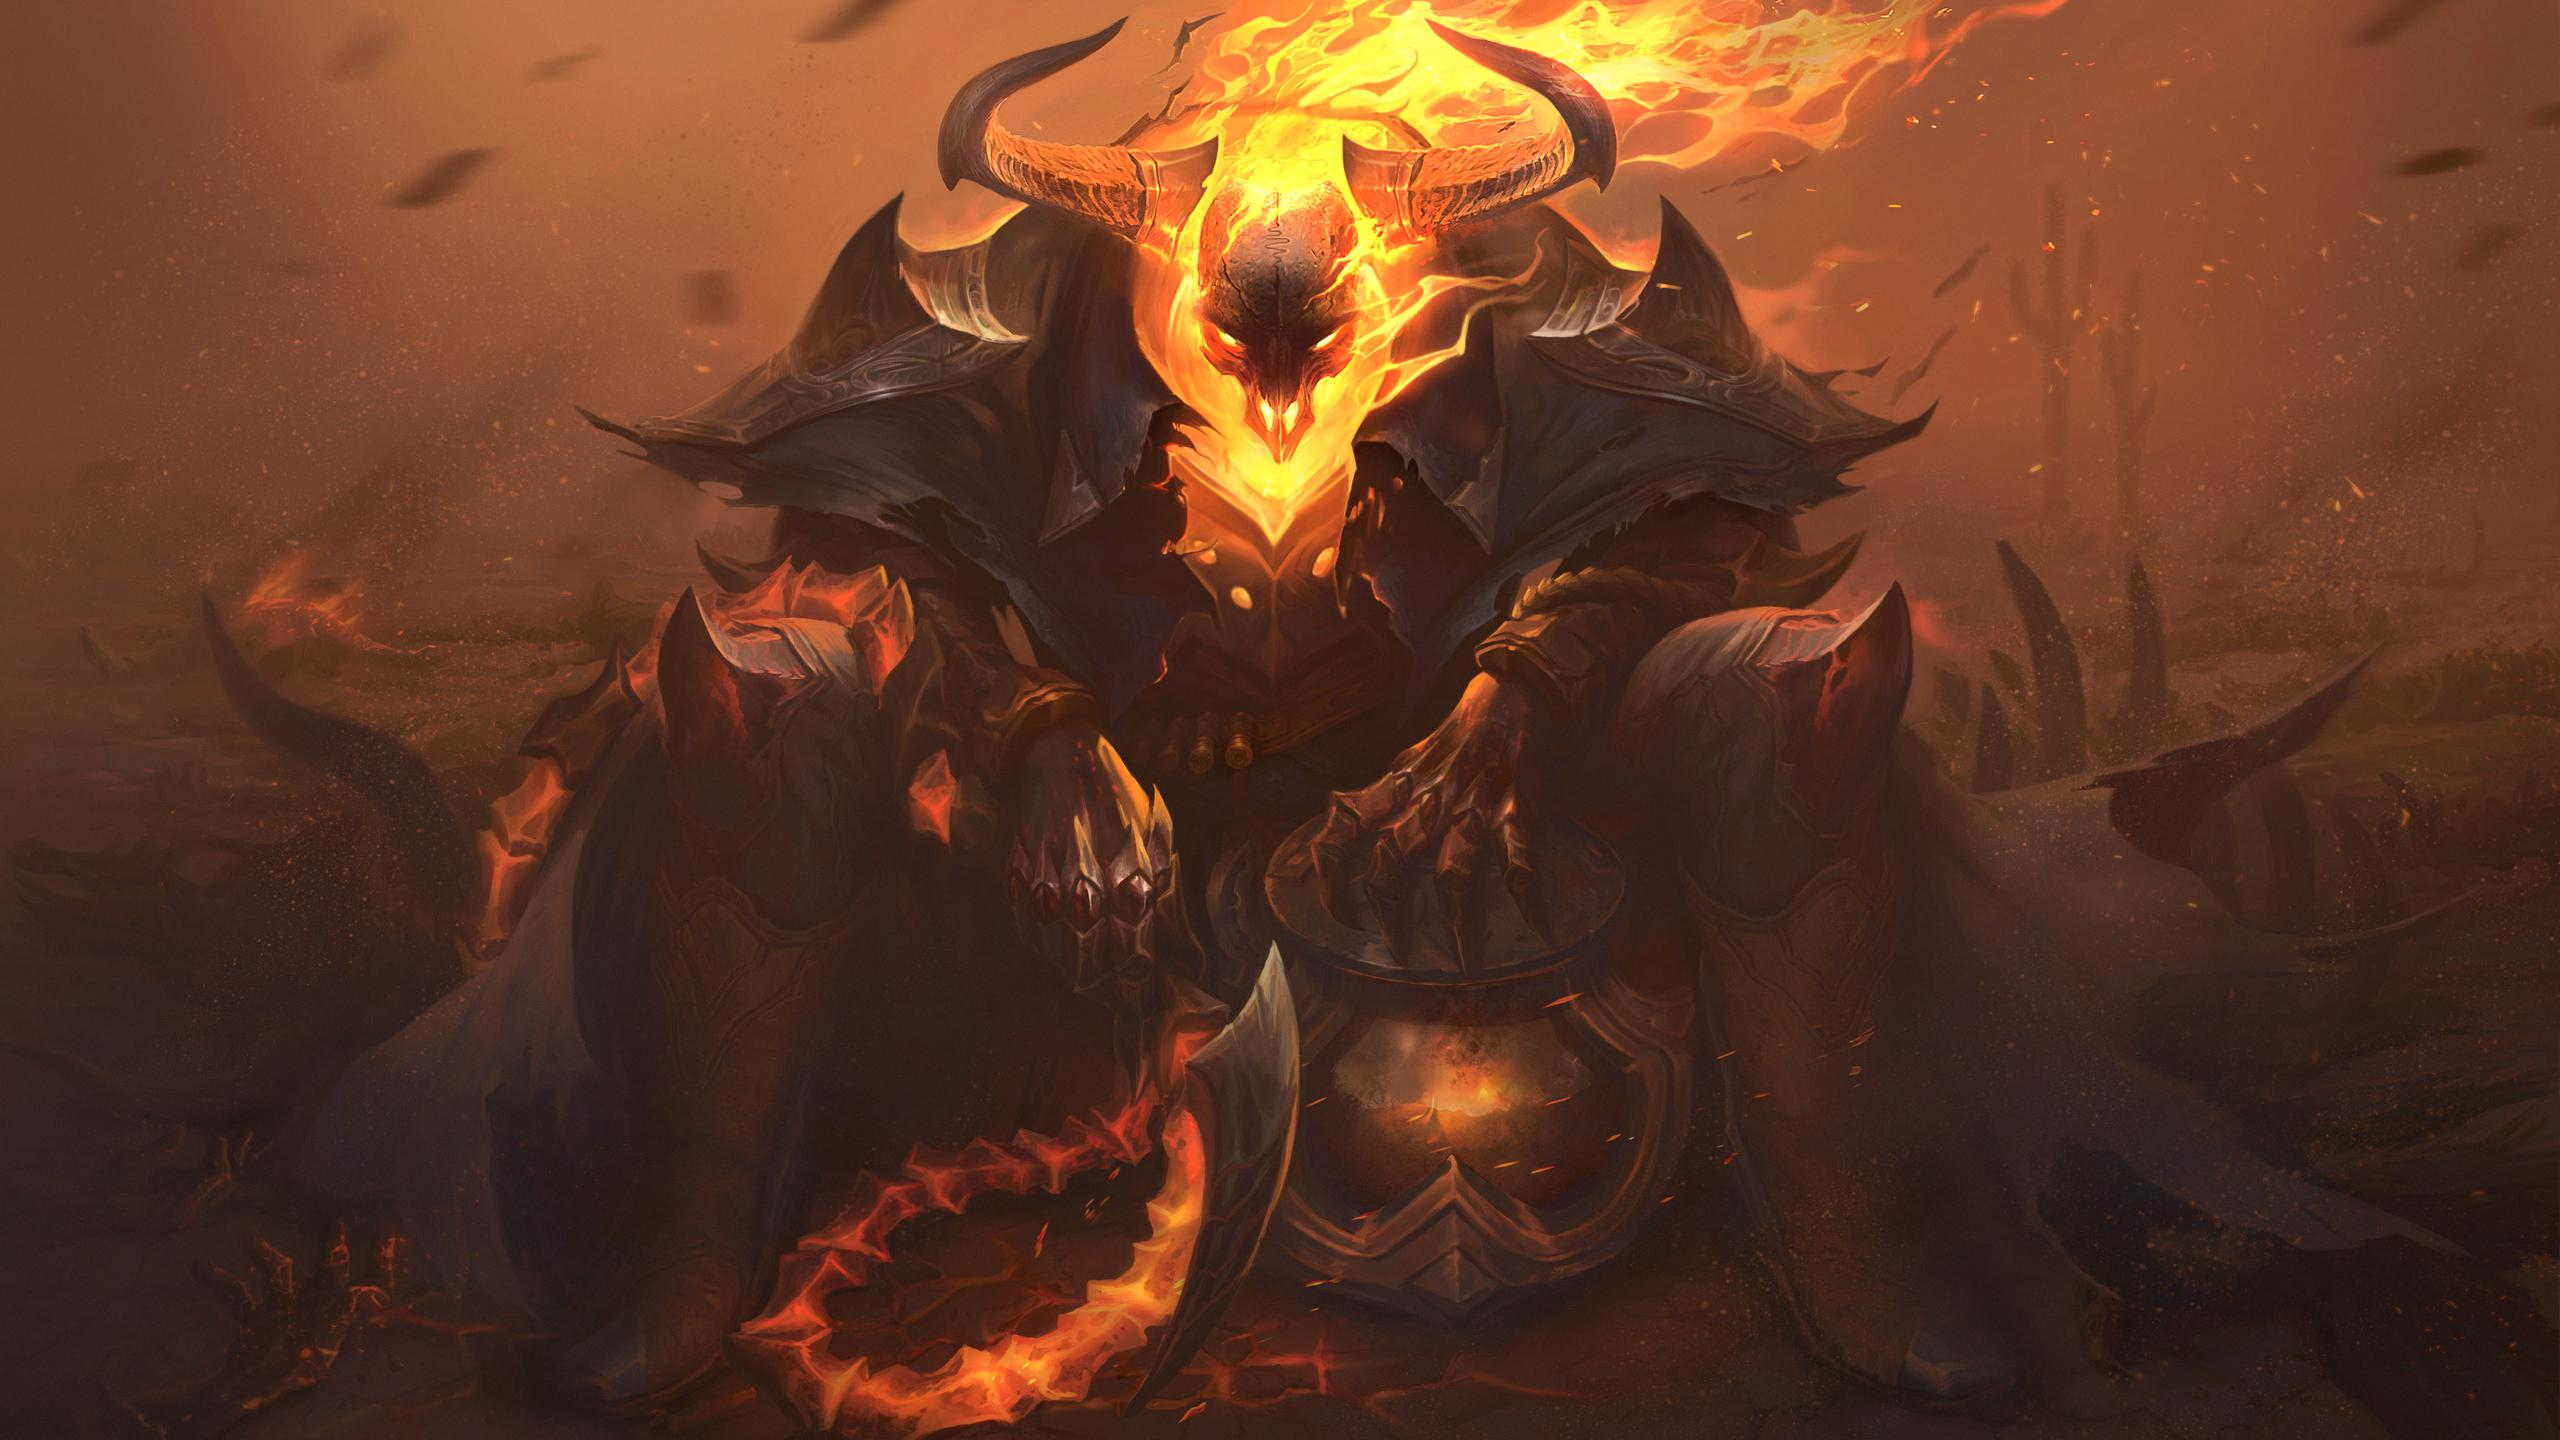 Demon 4k Wallpapers For Your Desktop Or Mobile Screen Free And Easy To Download